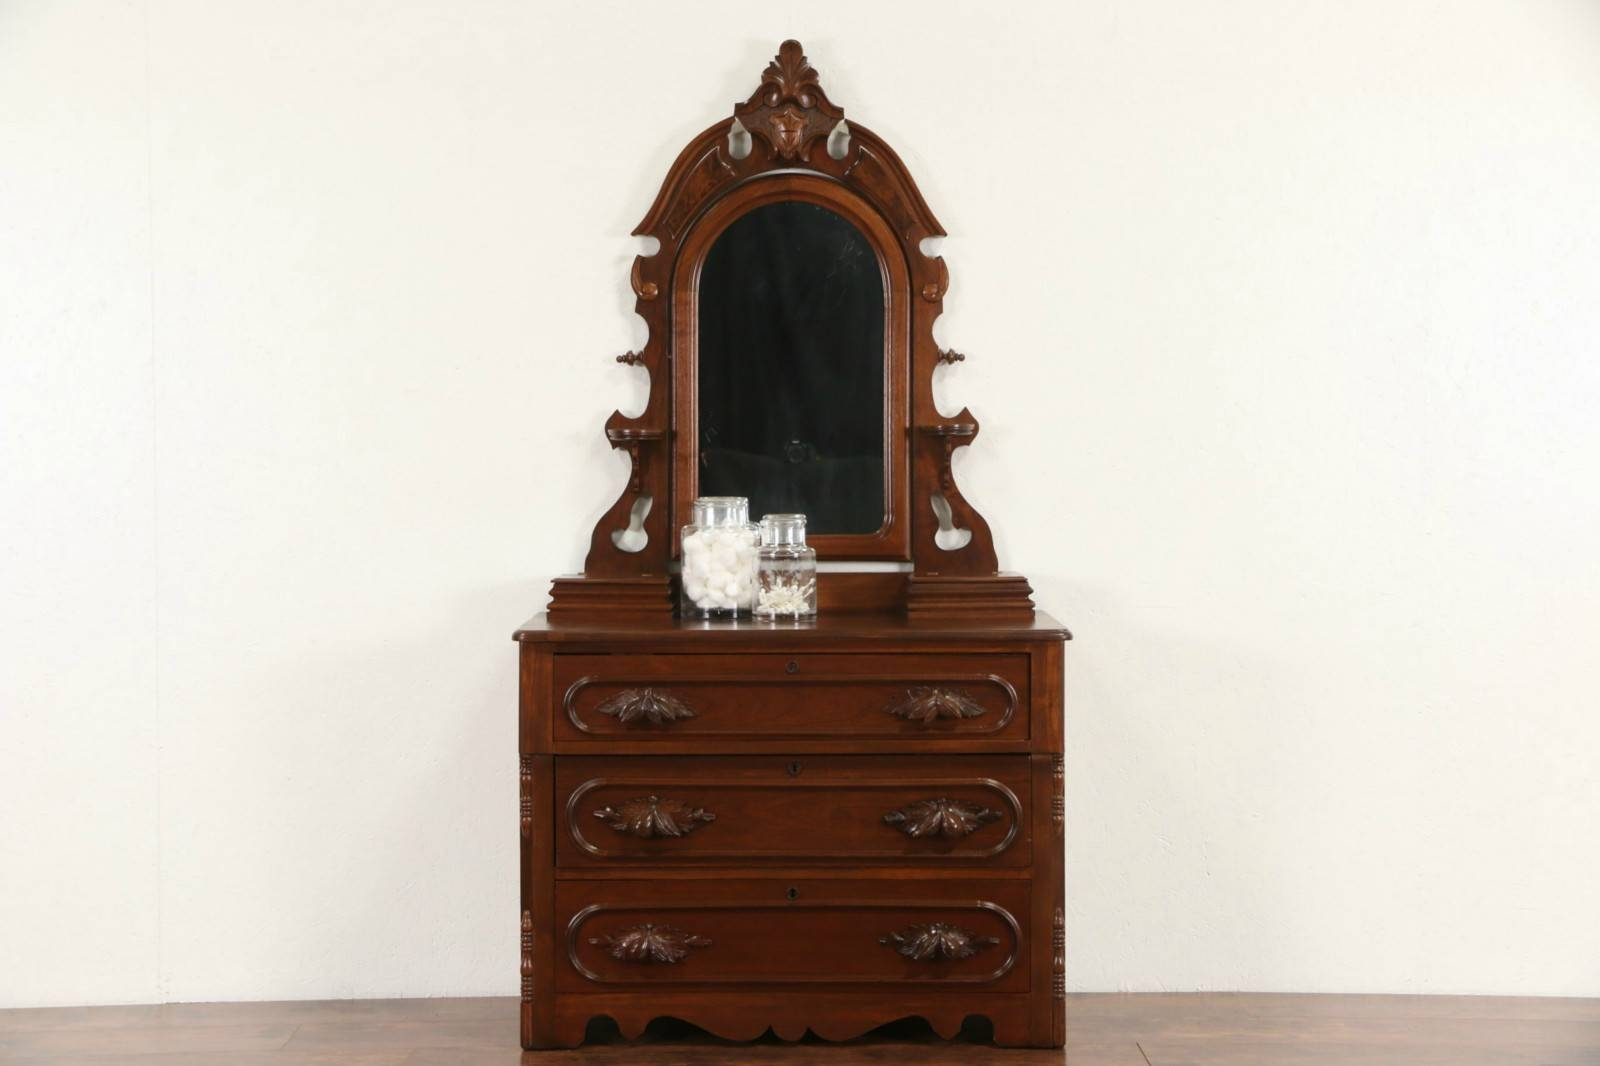 Sold - Victorian 1870 Antique Walnut Chest Or Dresser Jewel Boxes regarding Antique Victorian Mirrors (Image 13 of 15)